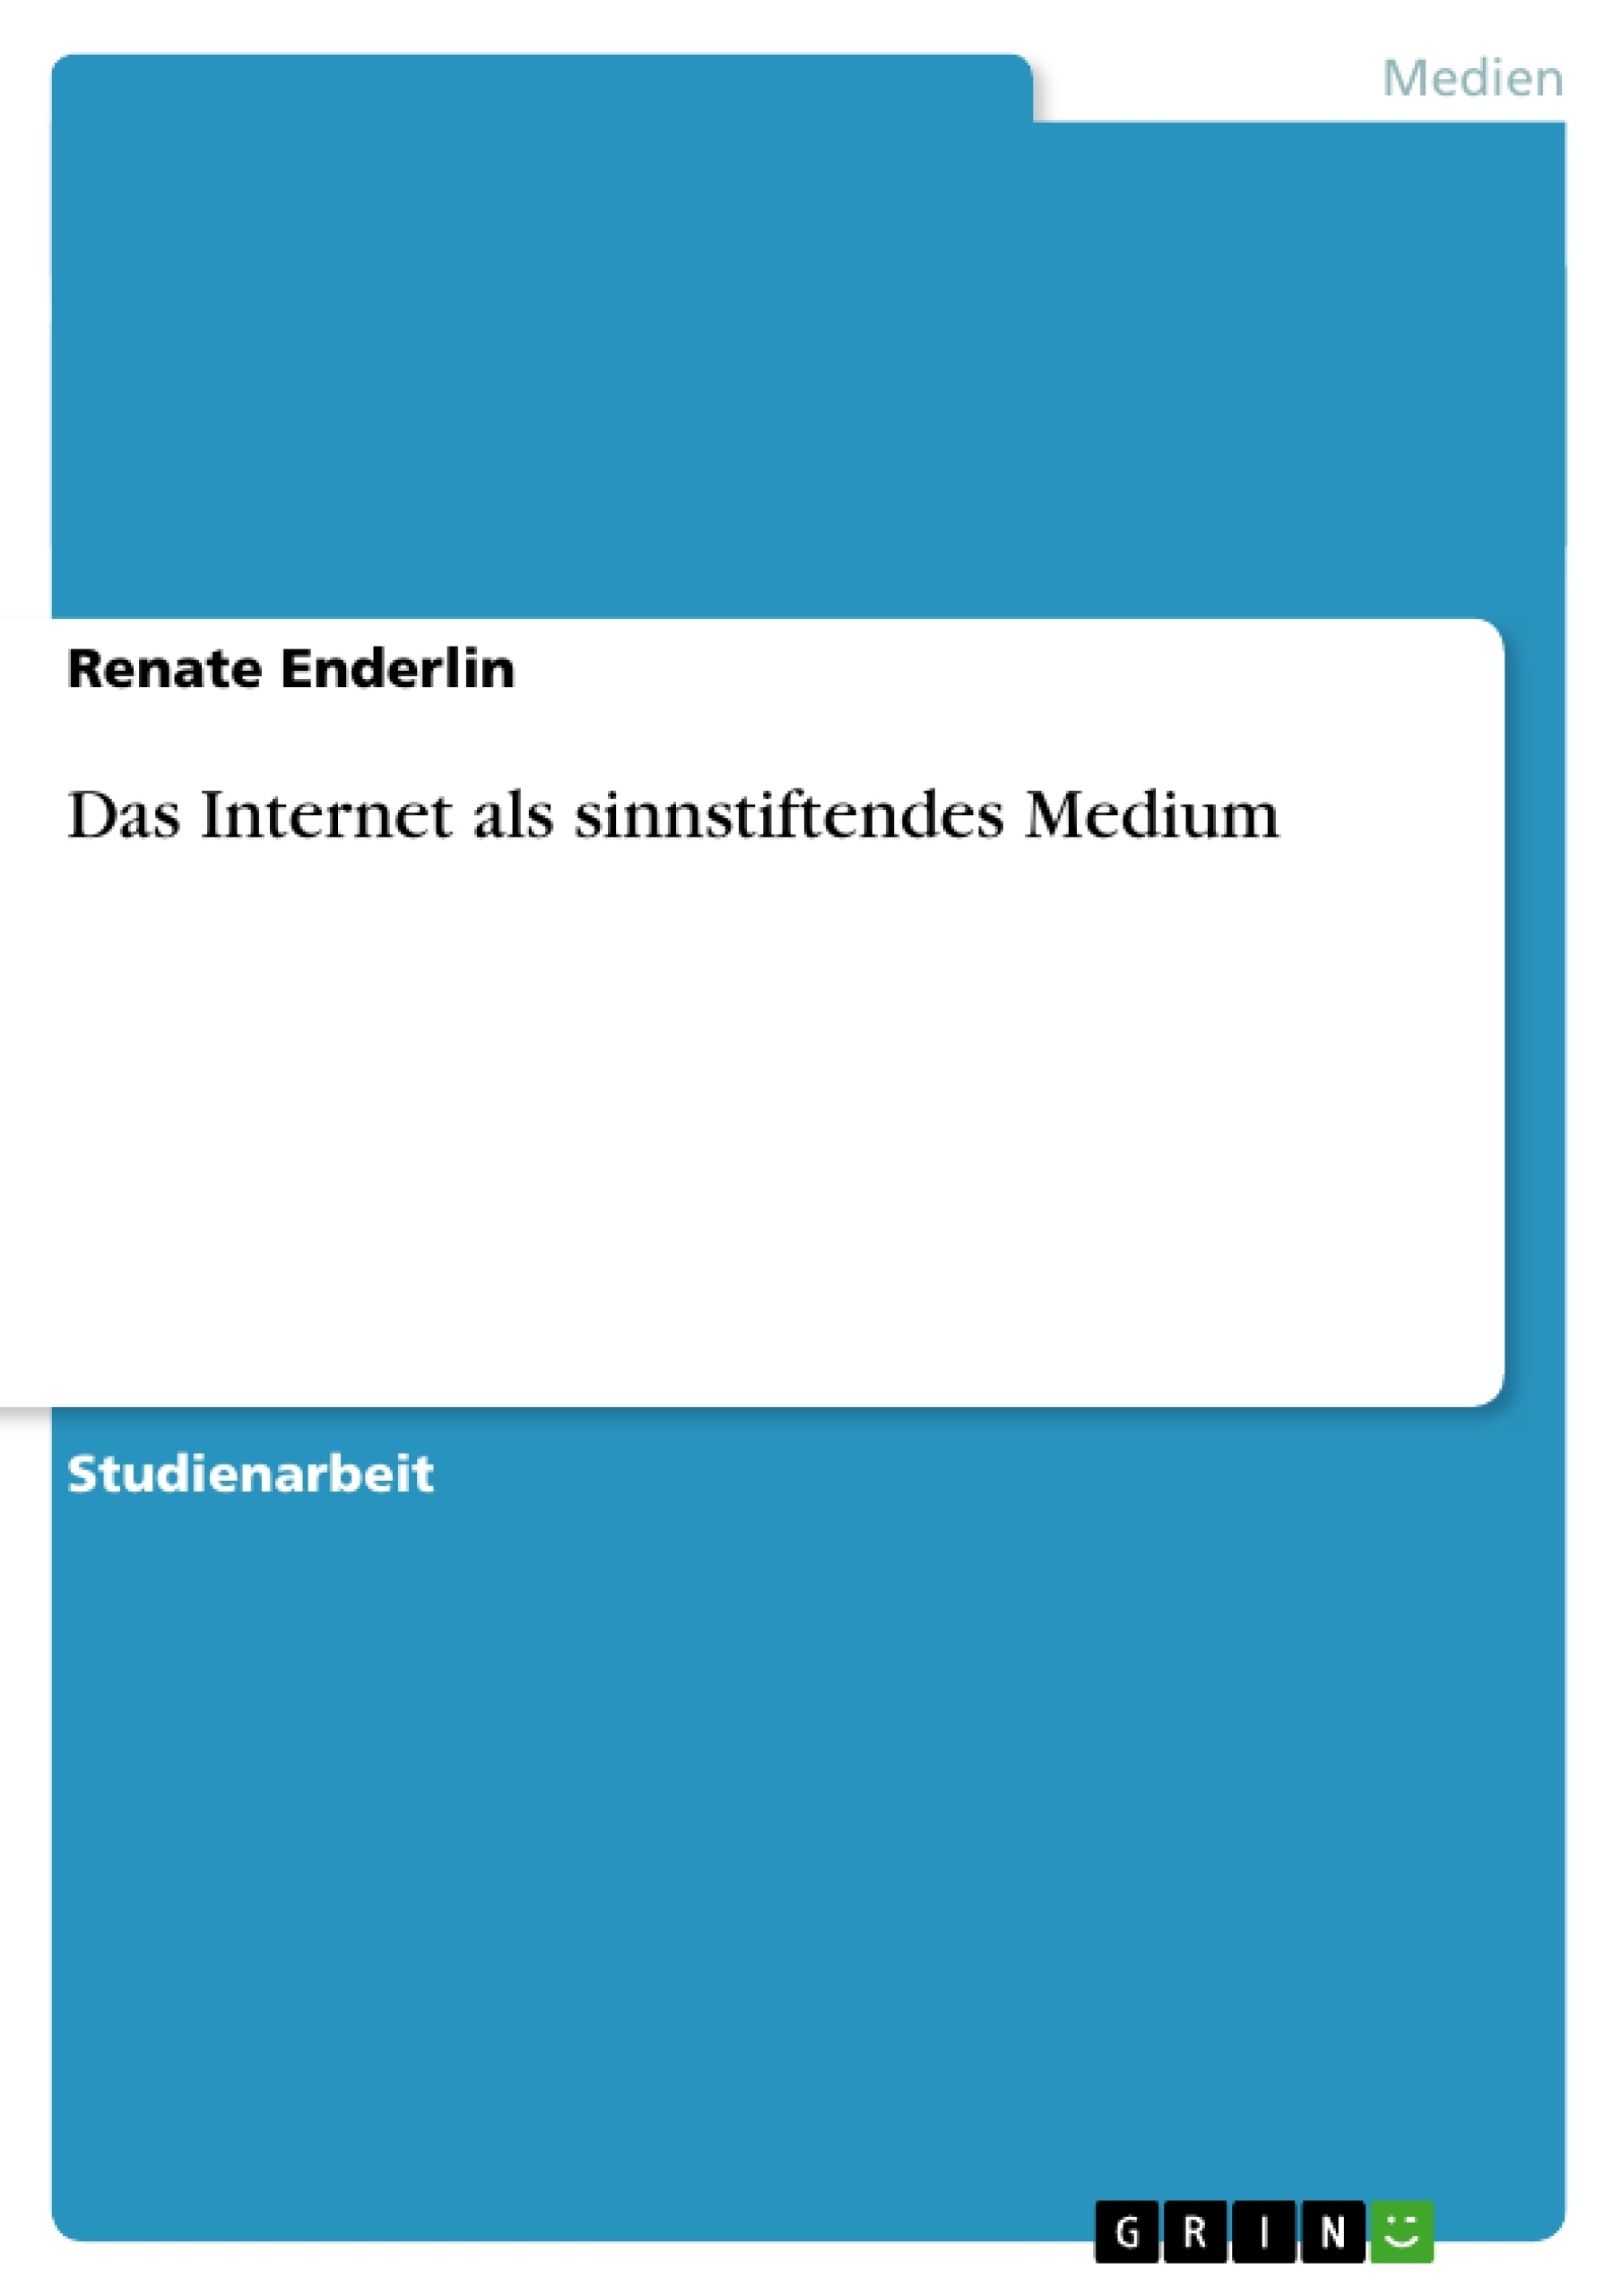 Titel: Das Internet als sinnstiftendes Medium